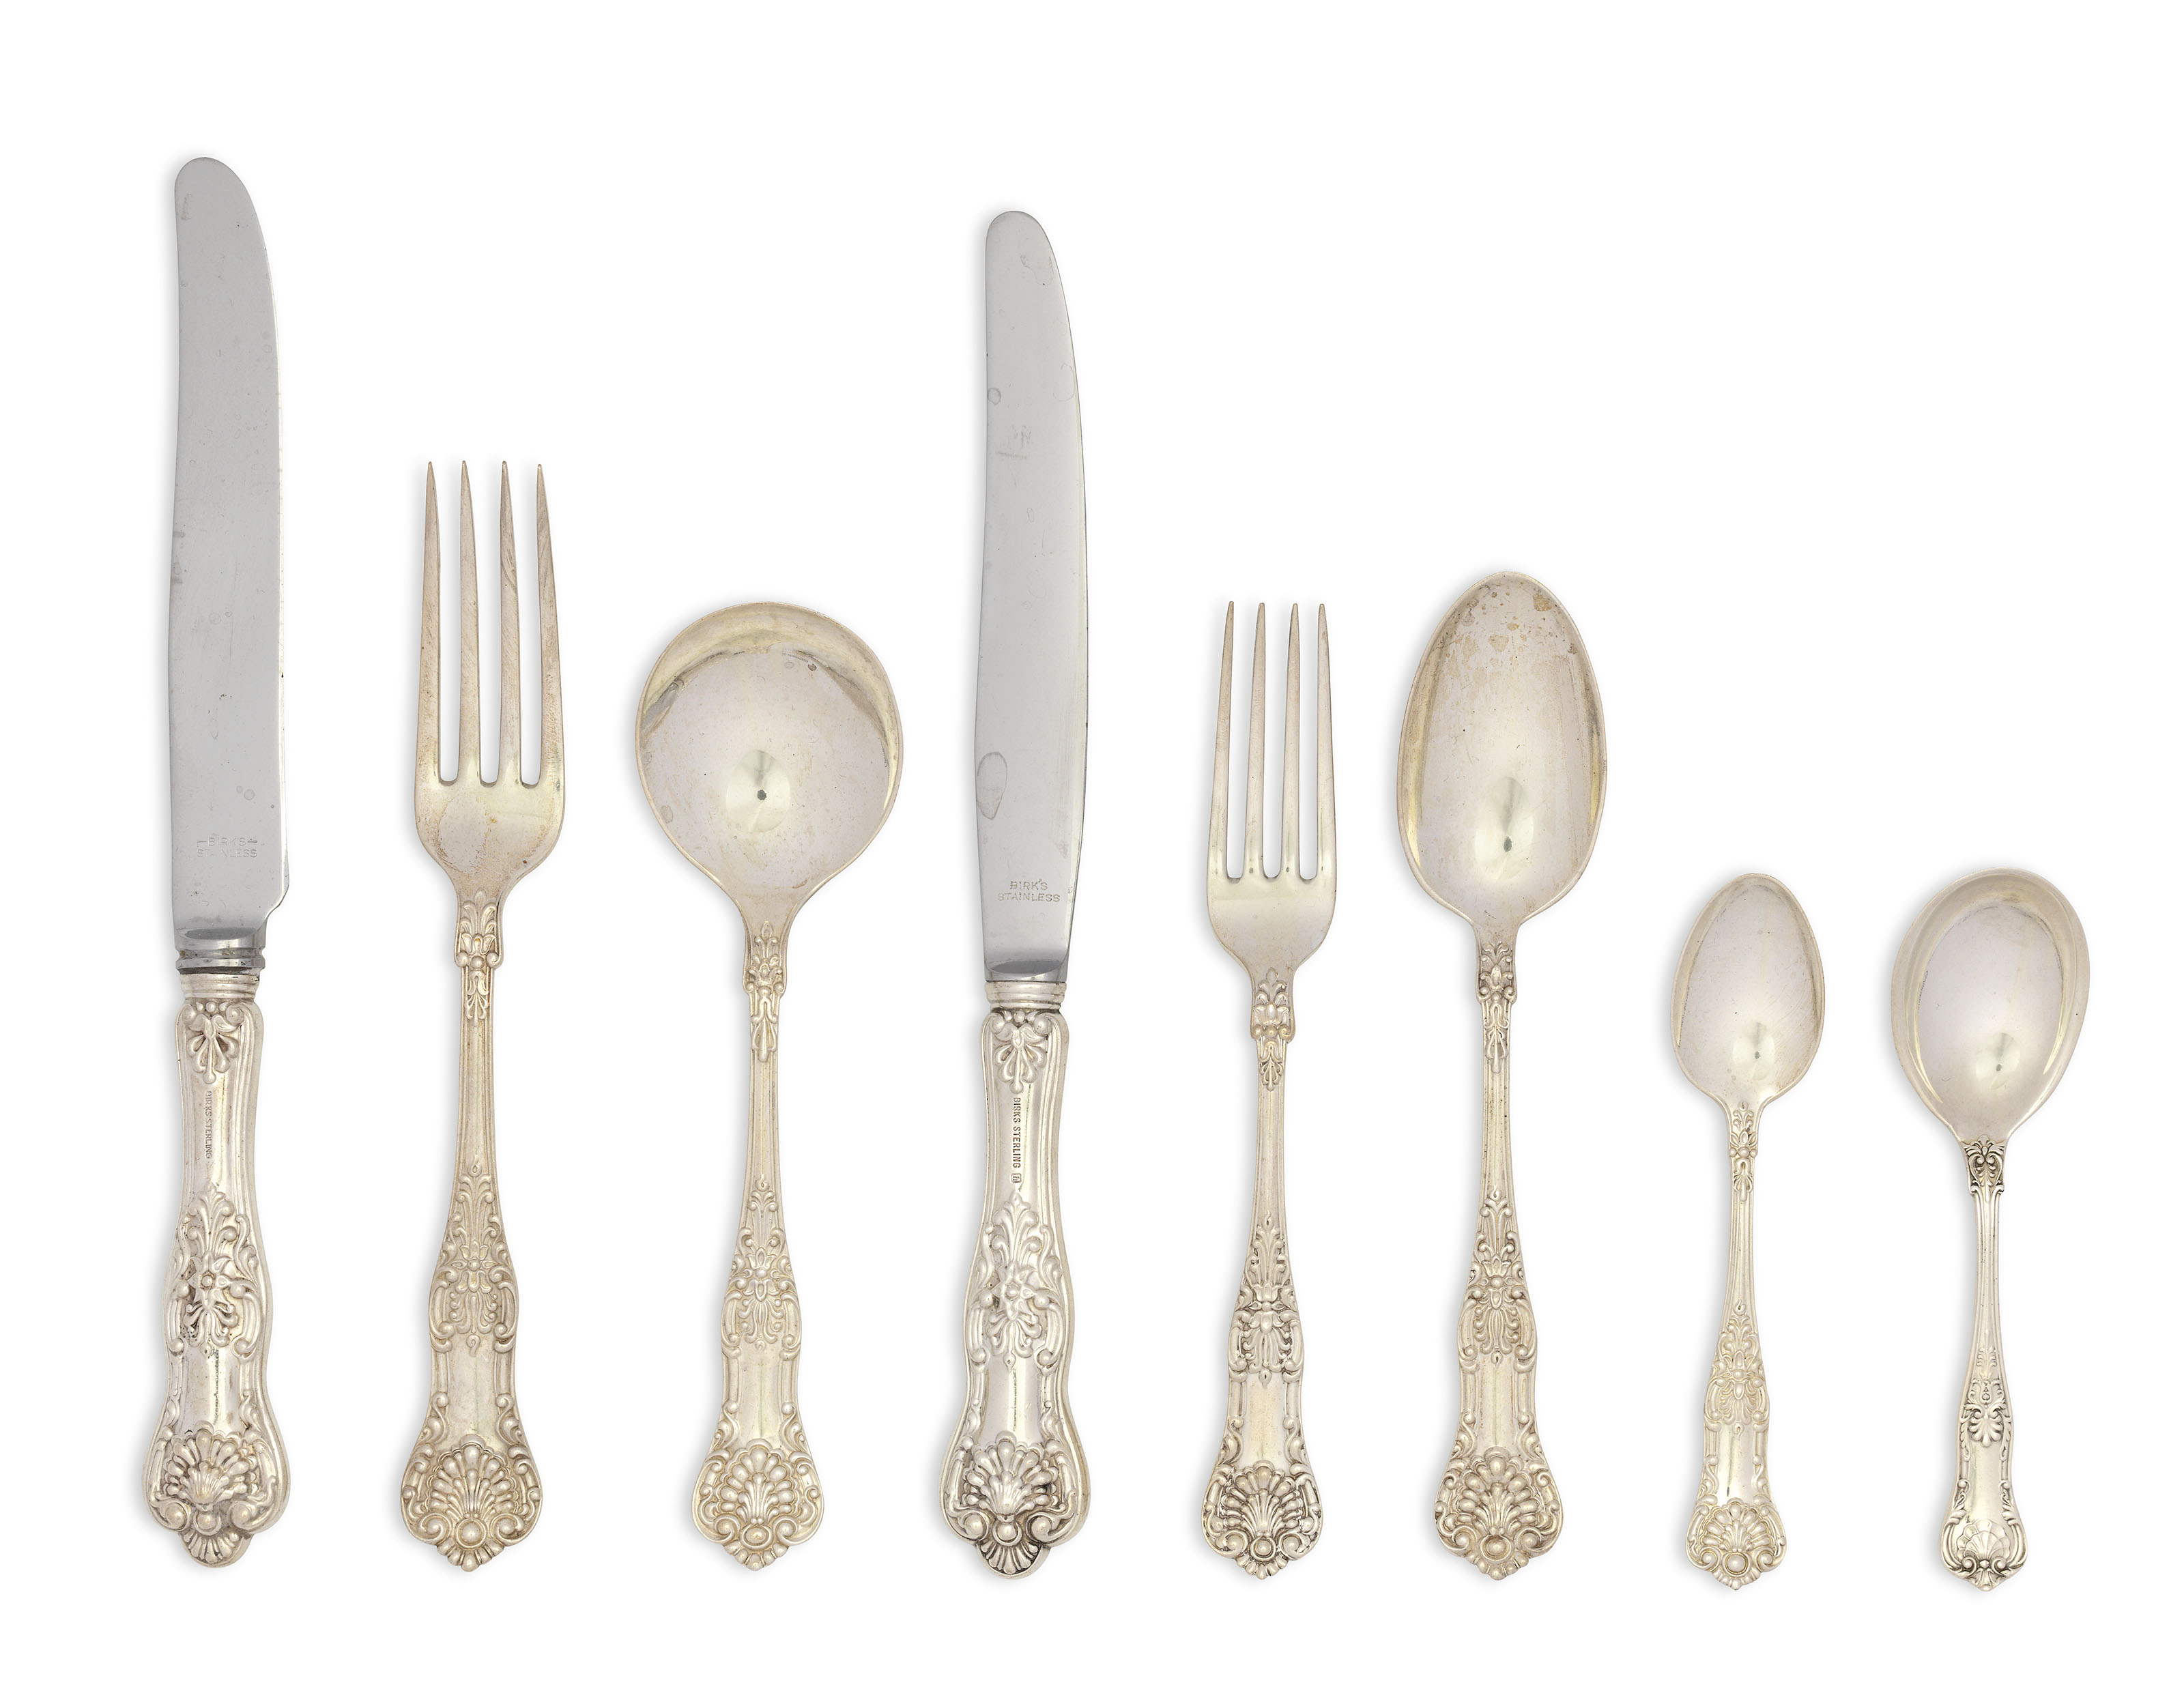 Gorham Sovereign Old Sterling Silver Salad Fork No Monograms s - 6 1//2 Inches